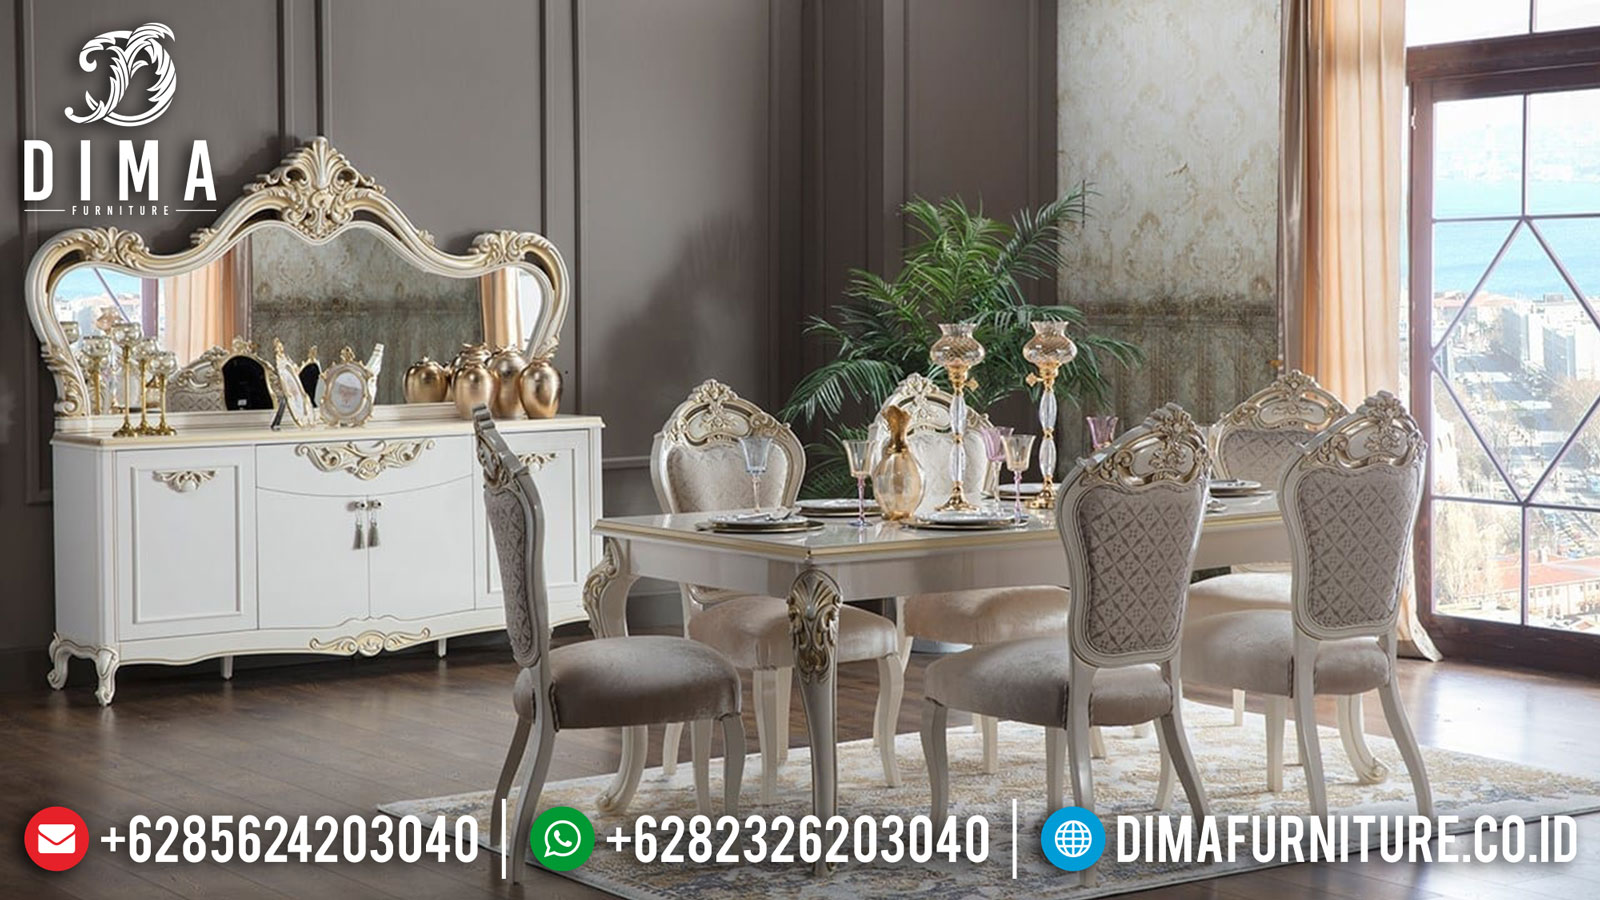 Meja Makan Mewah Ukir Jepara High Luxury Design Comfortable ST-1126